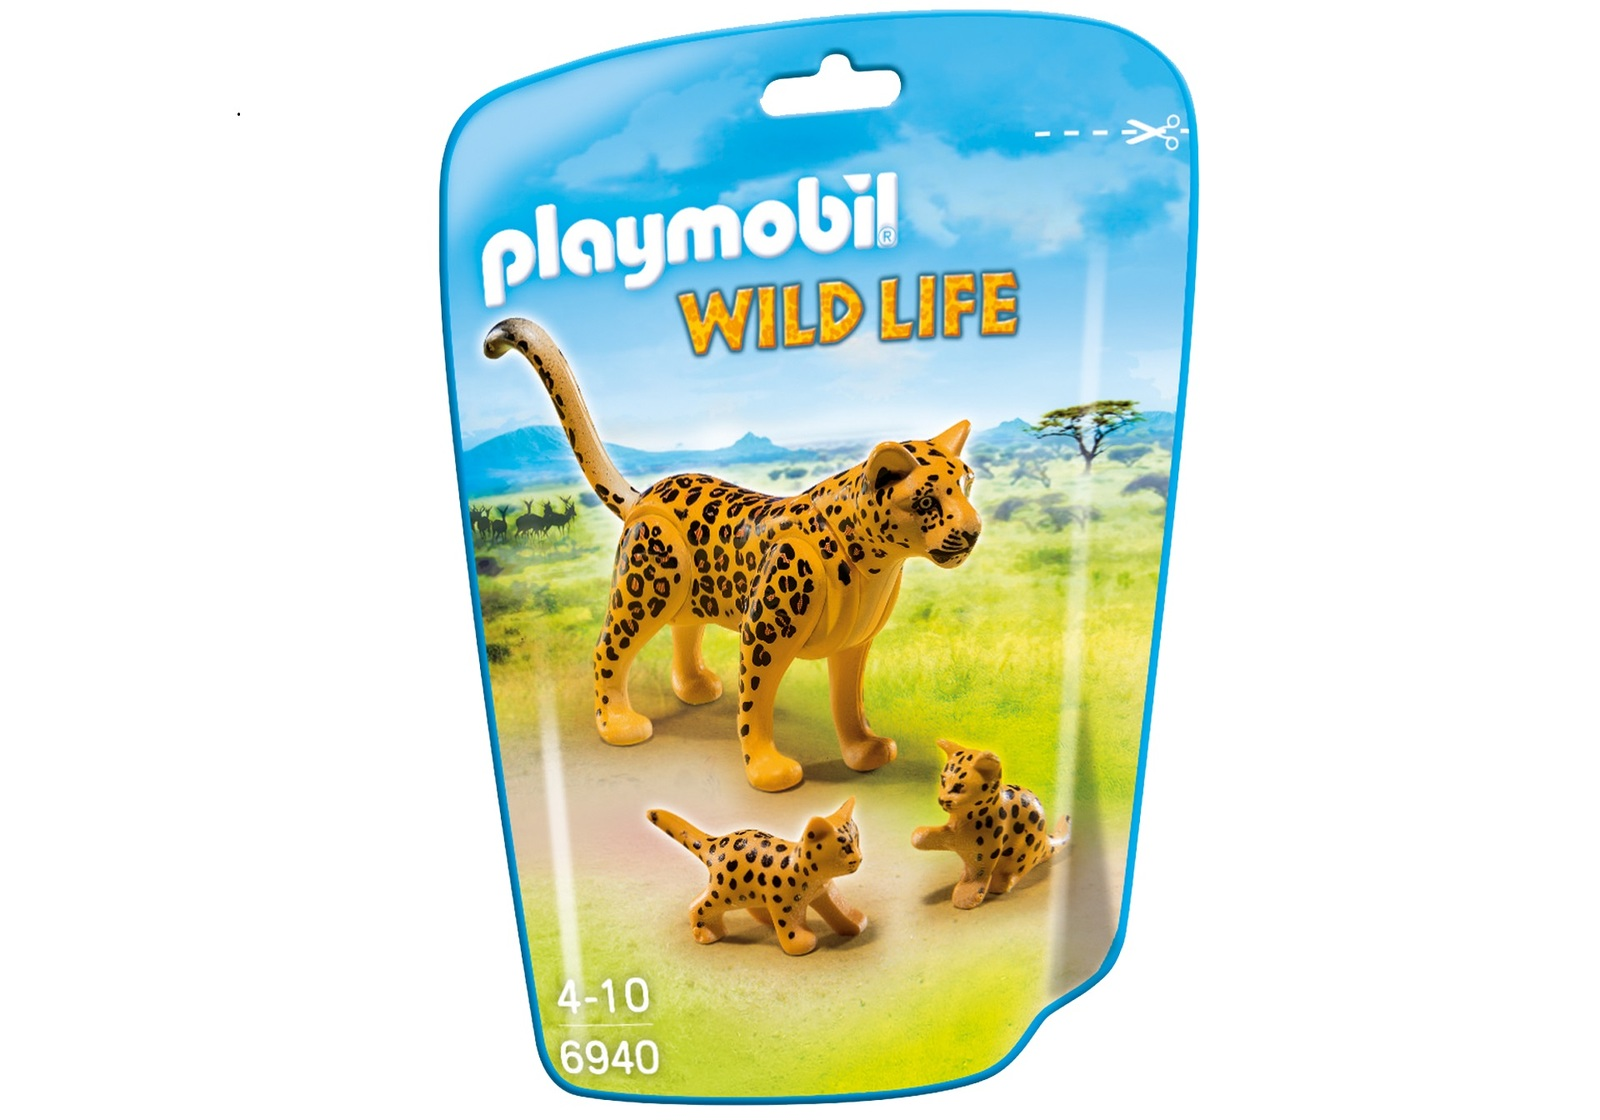 Playmobil: Wildlife - Leopard with Cubs image